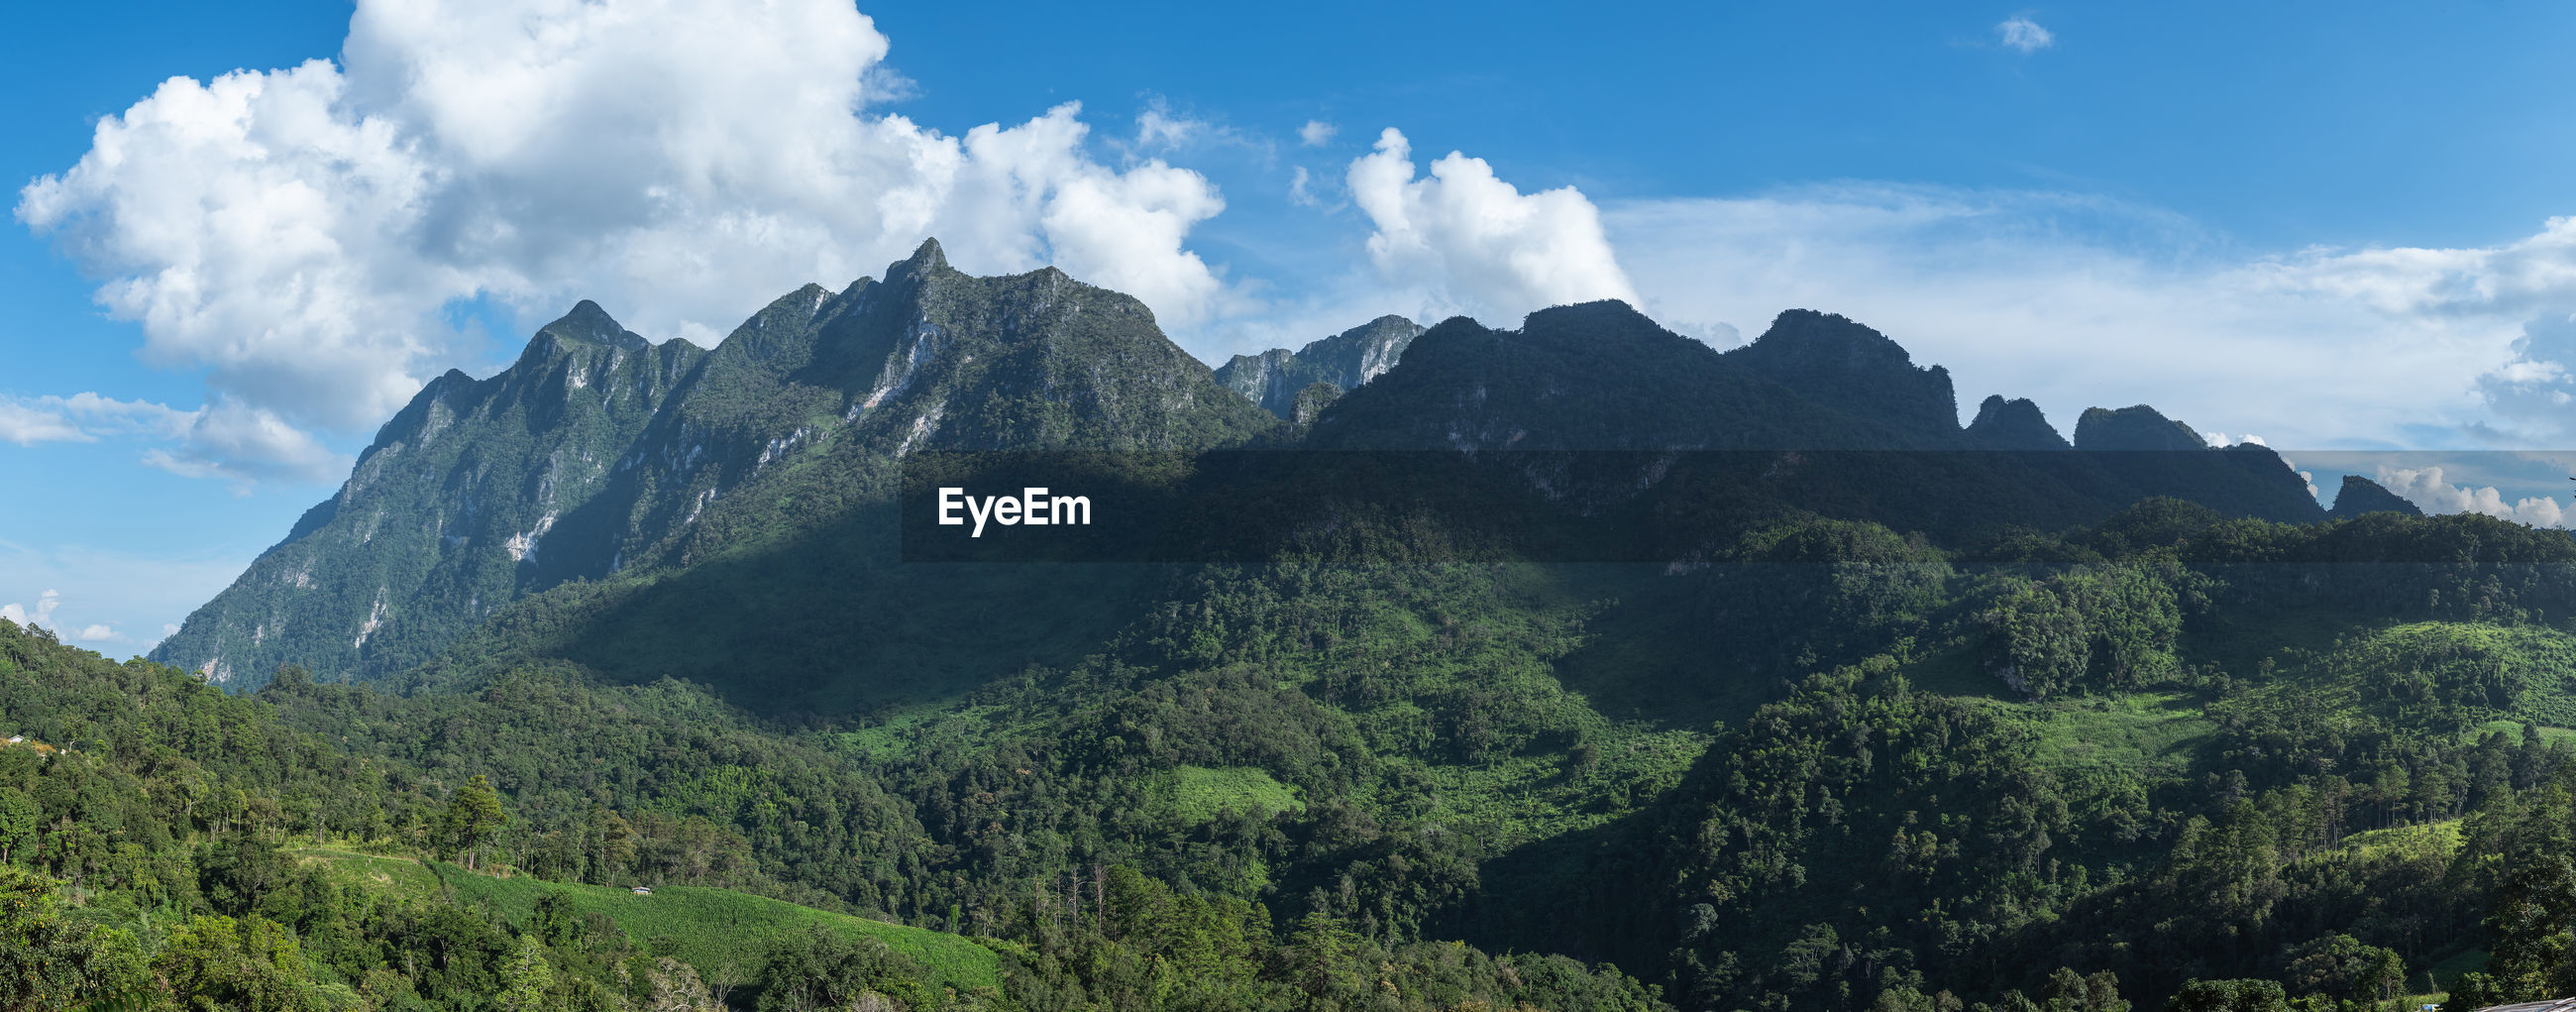 PANORAMIC VIEW OF TREES AND MOUNTAIN AGAINST SKY